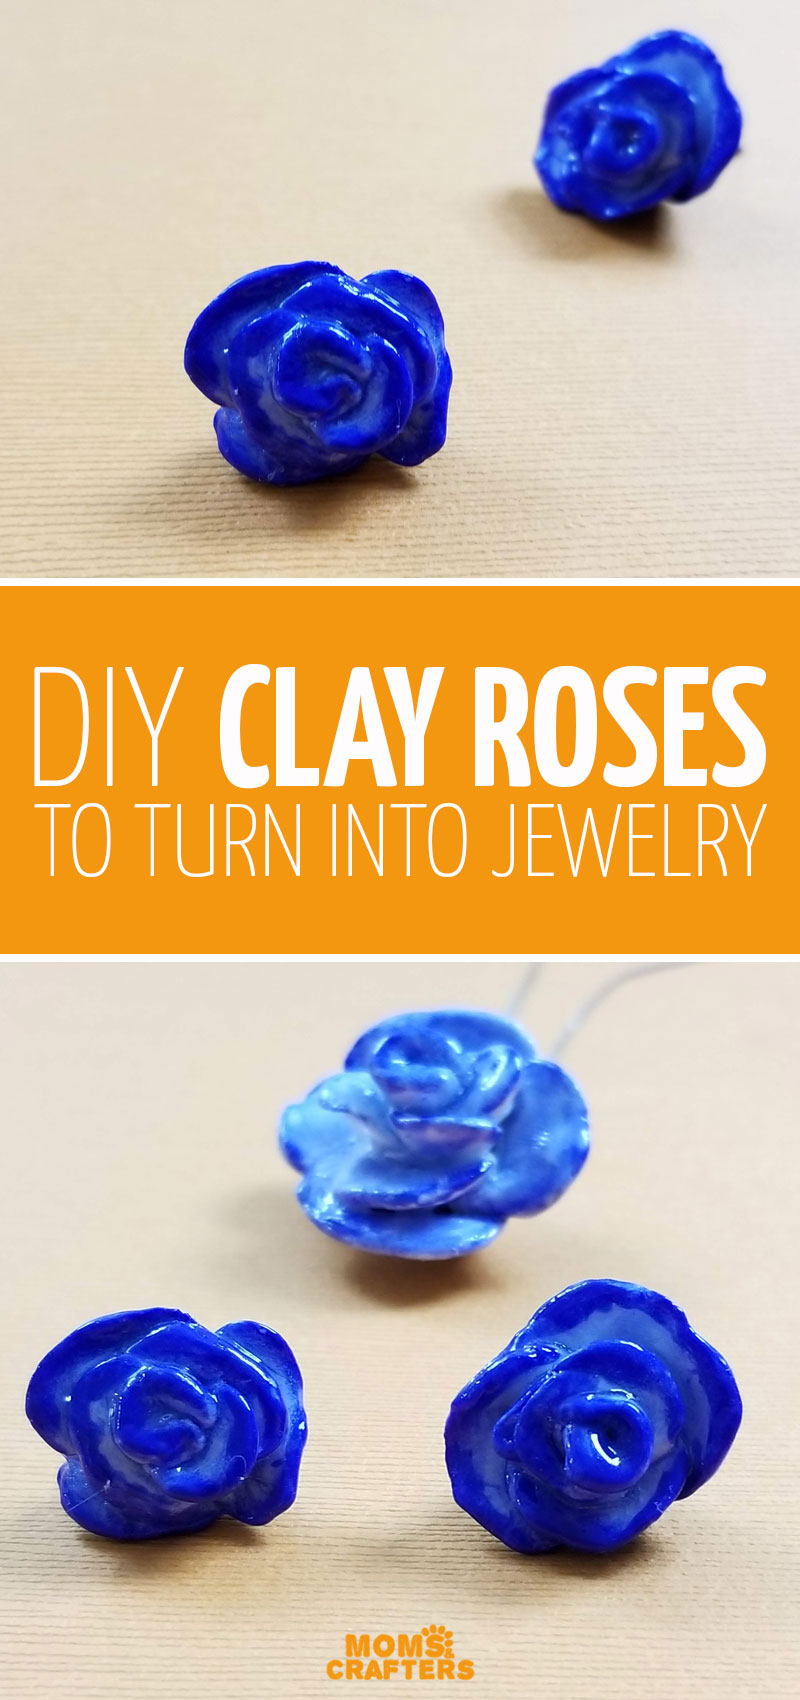 Make DIY clay roses and turn them into beautiful pendants and earrings for beginners. First learn how to make clay rose earrings then turn it into a pendant too.